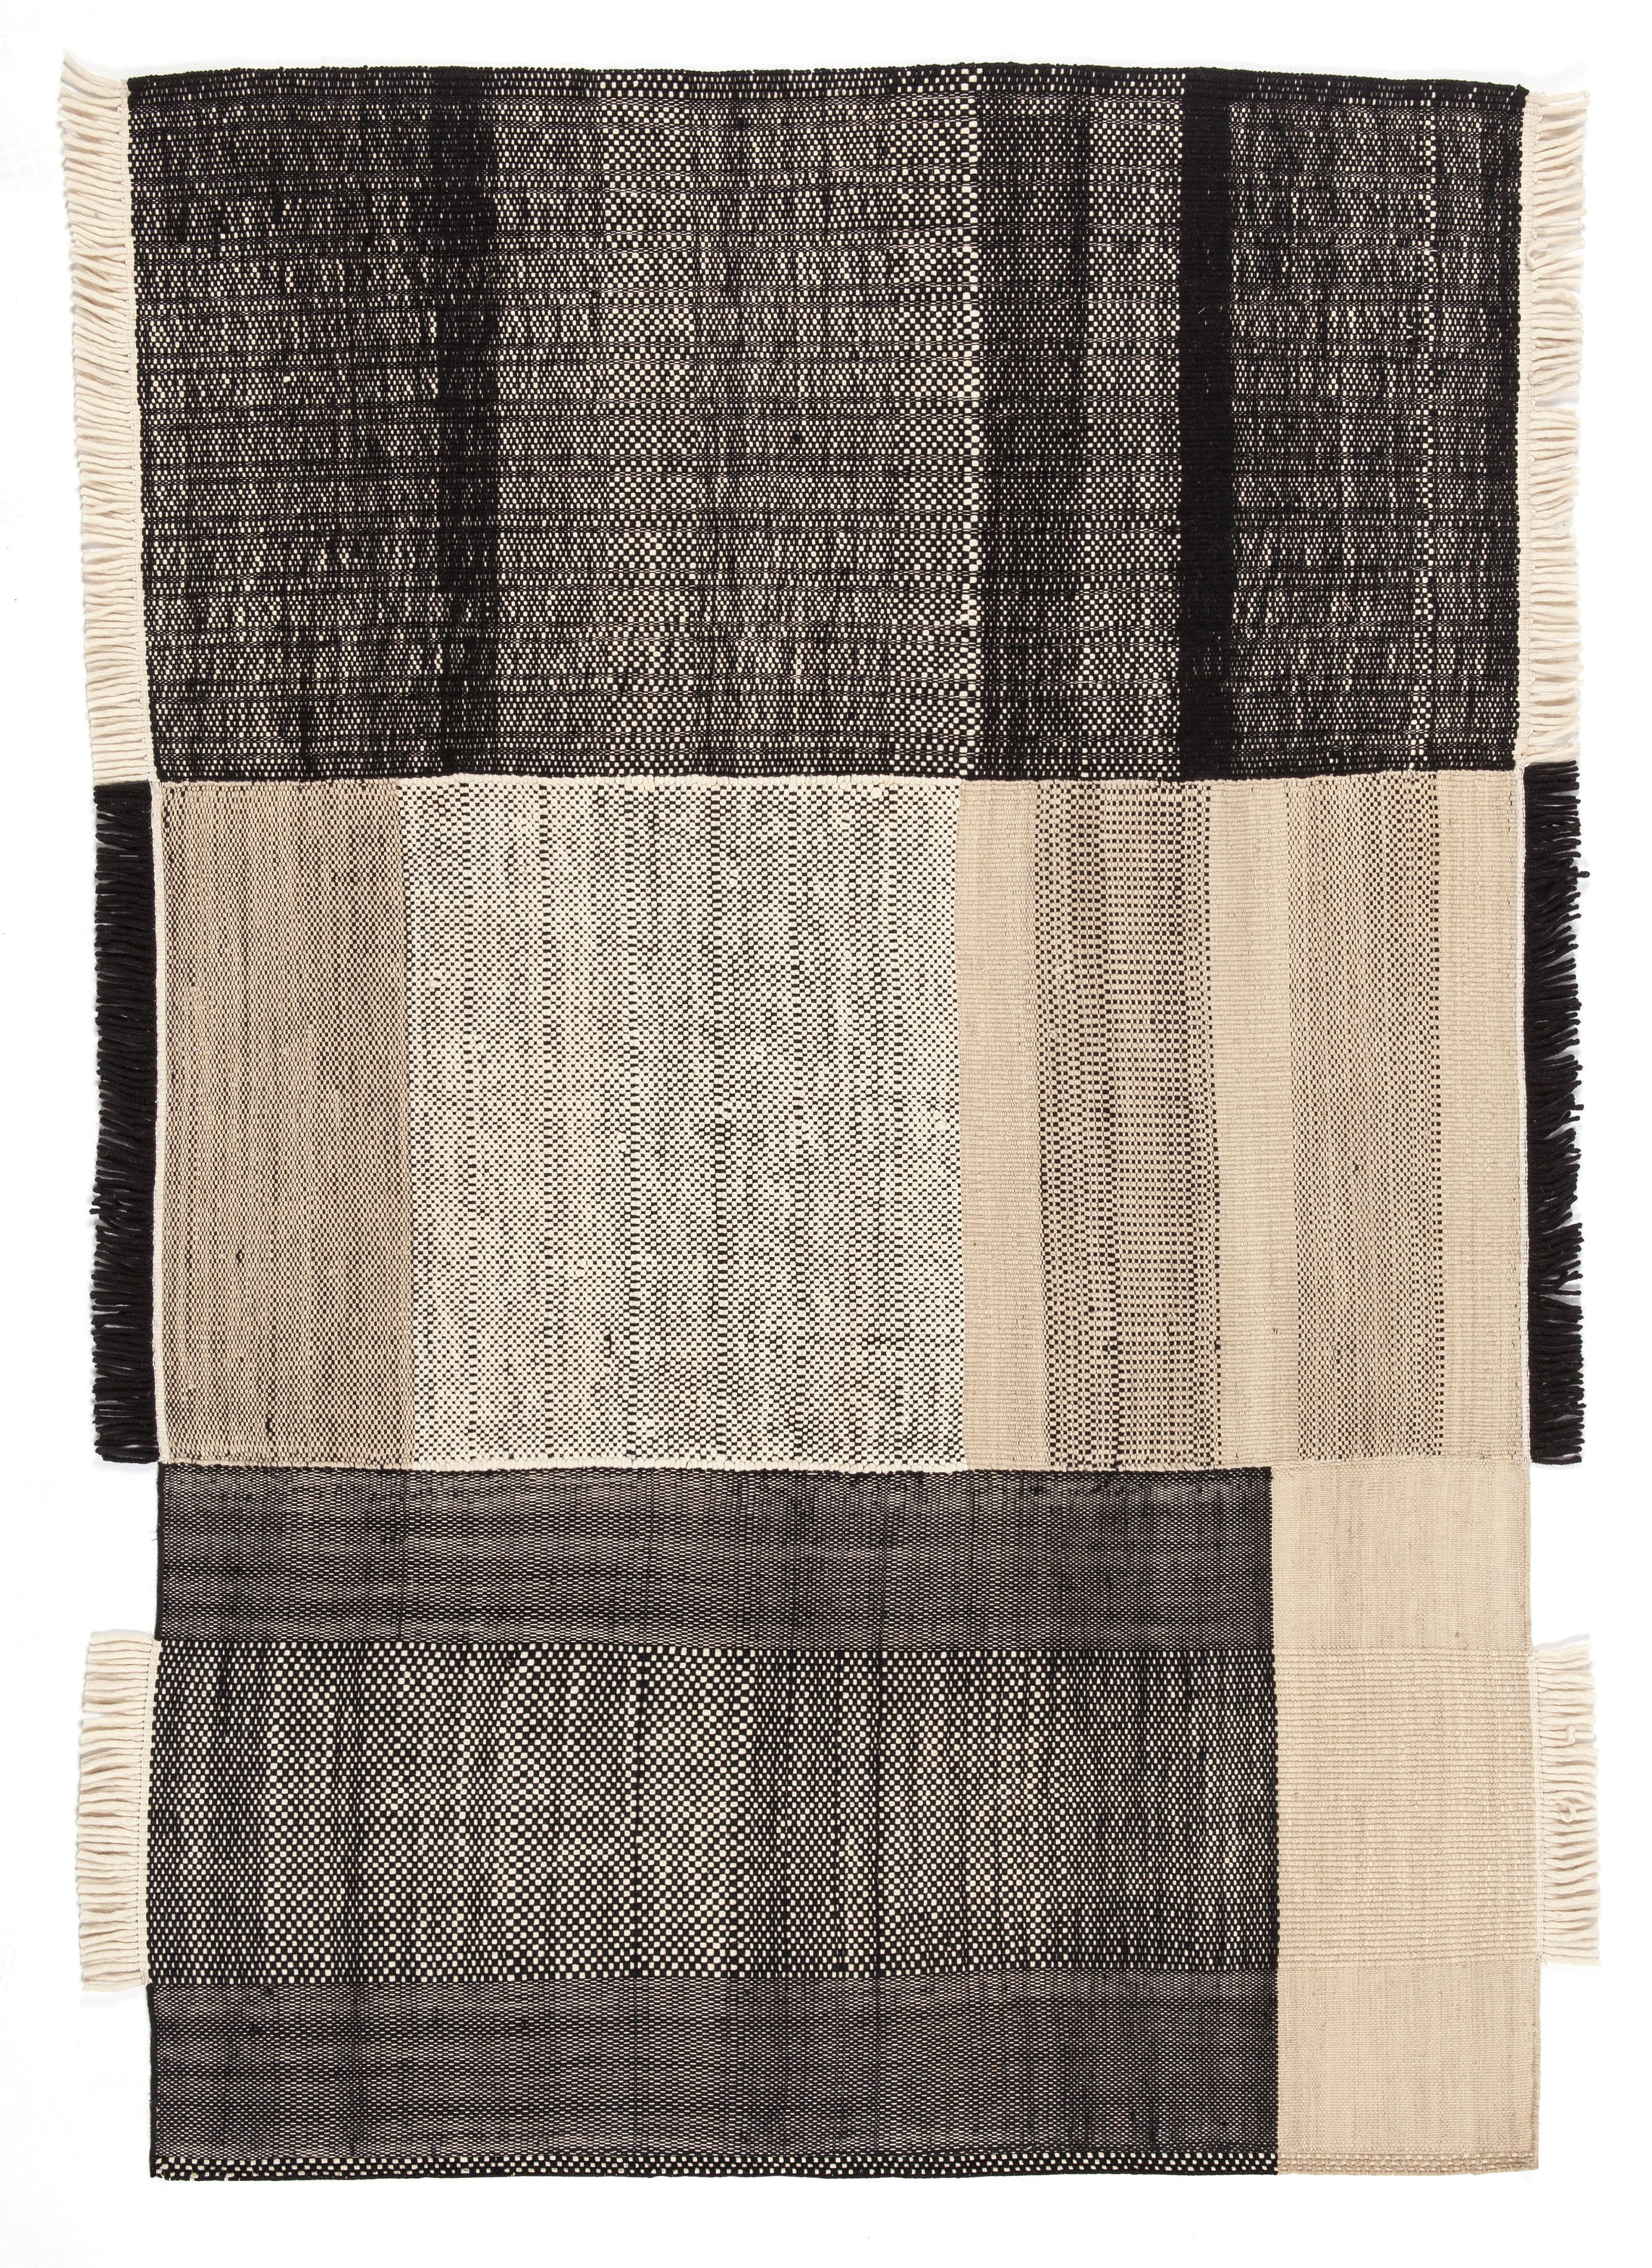 Decoration - Rugs - Tres Rug - 200 x 300 cm by Nanimarquina - Black - Cotton, Felt, New-zealand wool